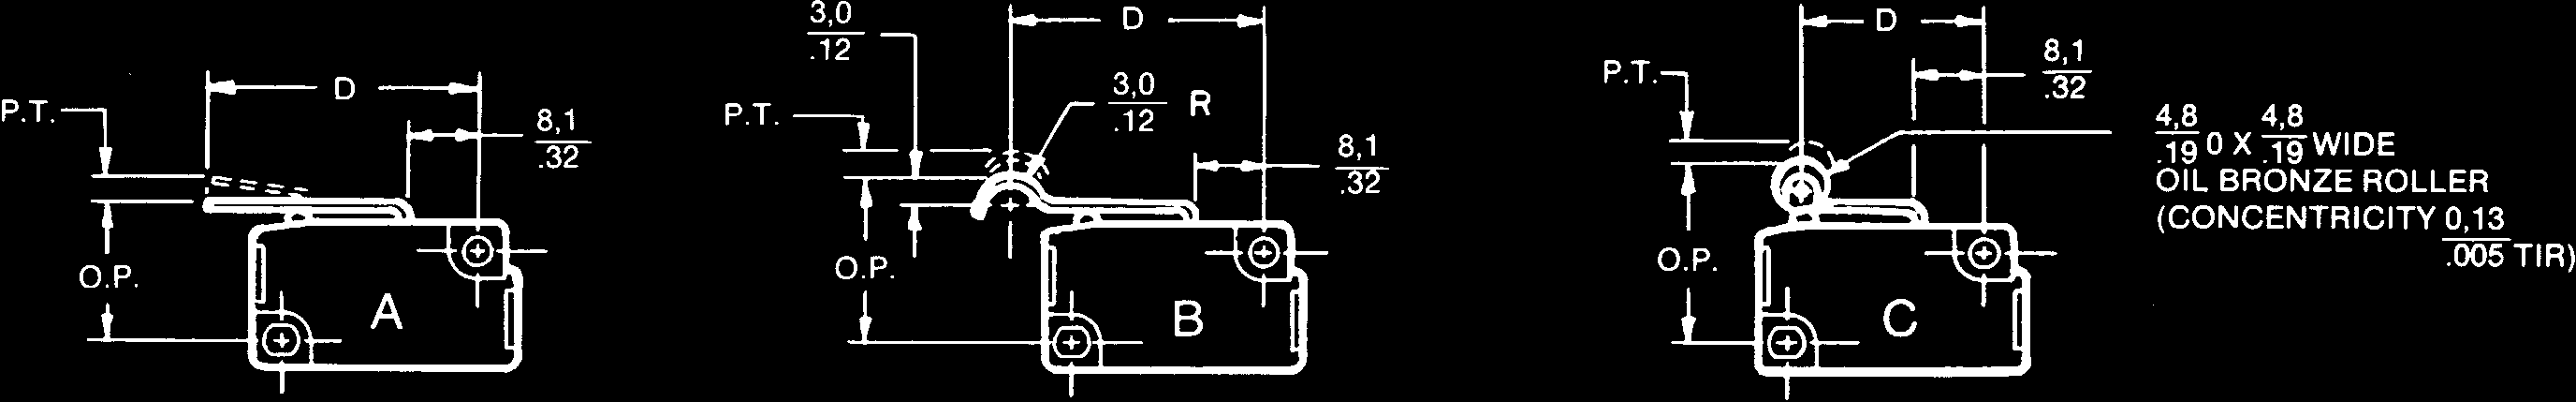 Analog Position Sensors Pdf Typical Hall Effect Sensor Wiring Details Image Pdfinfo P A G E 0 4 8 Solid State Basic Switch Vx Series Features